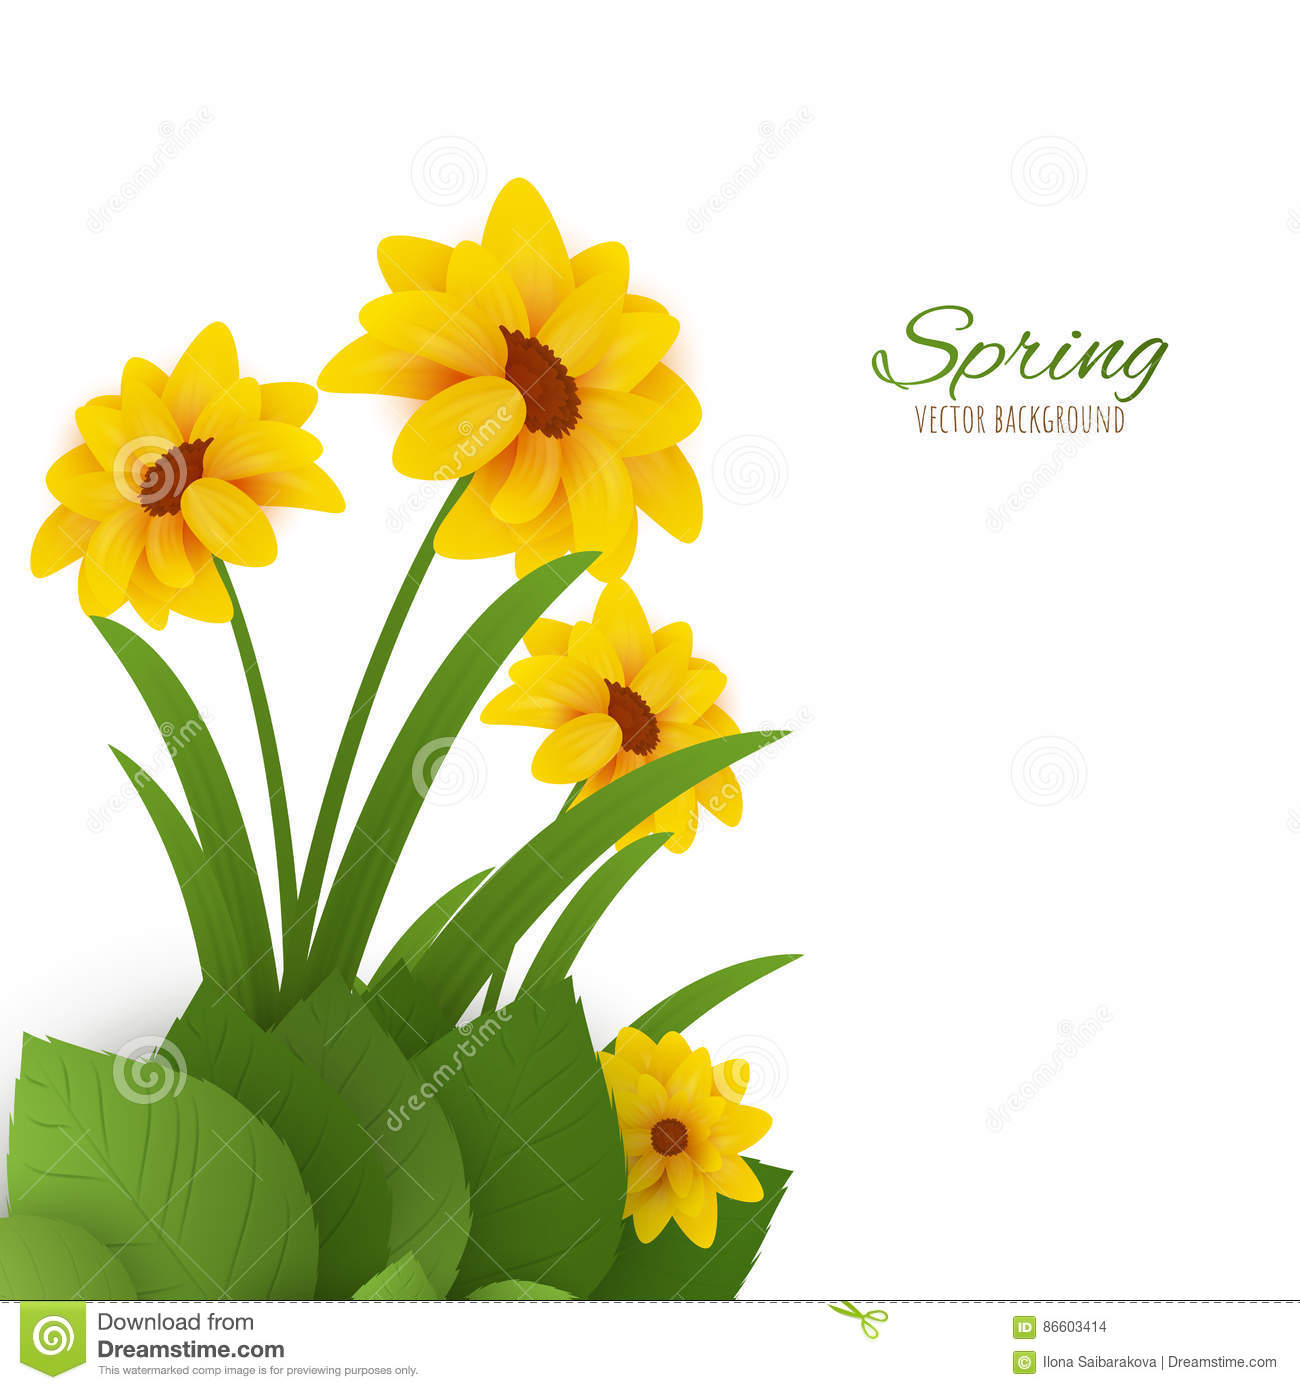 Spring Flowers Vector Background Eps10 Stock Vector Illustration